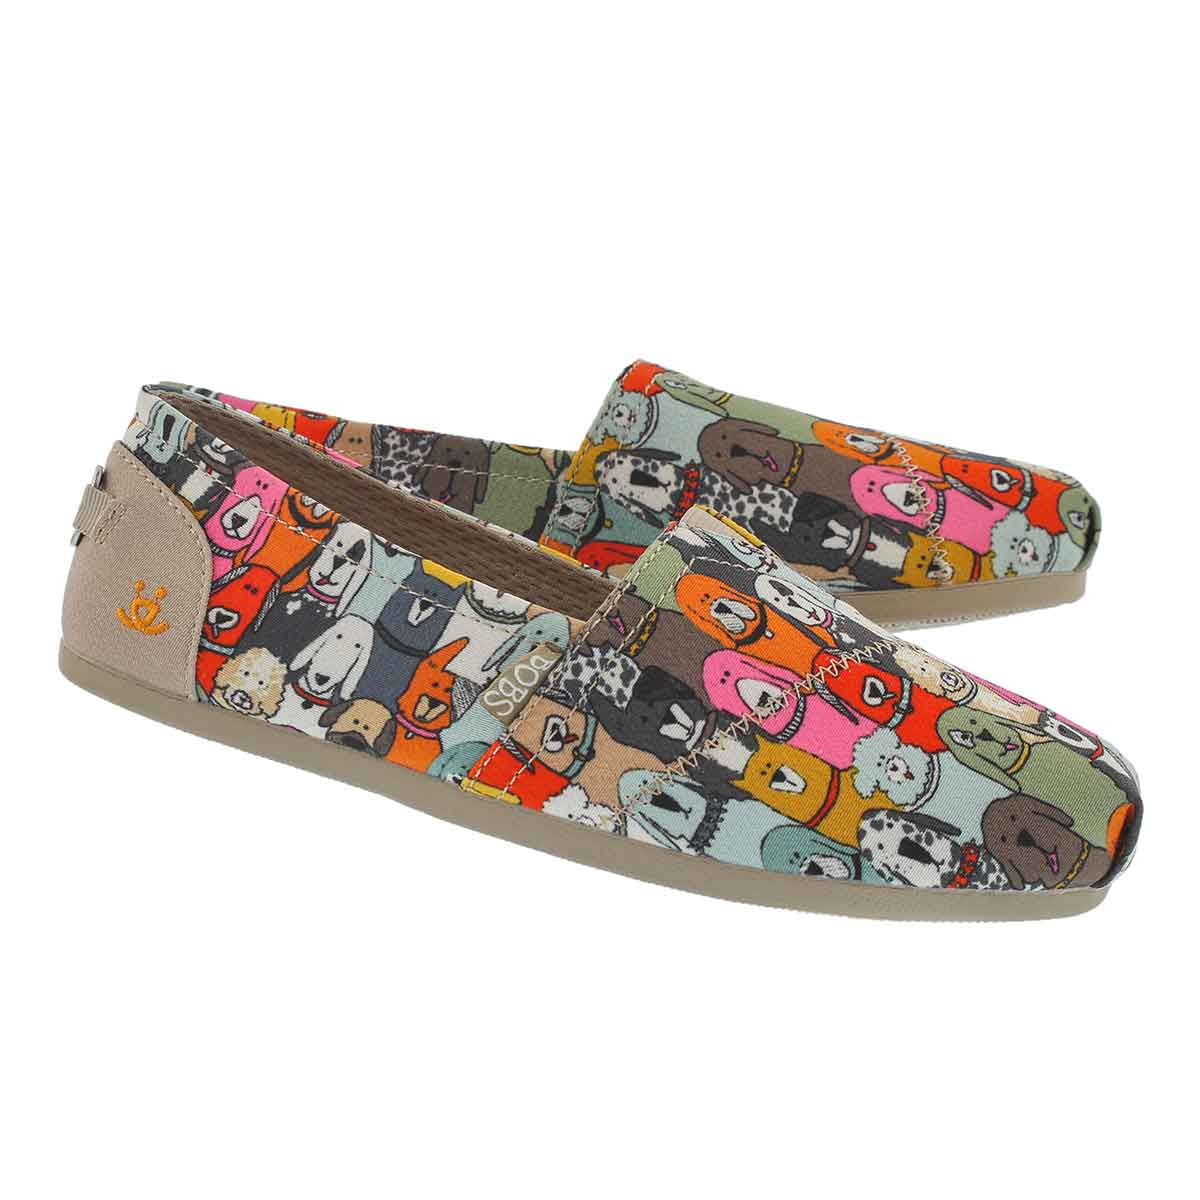 Lds Bobs Plush Wag Party mlti slip on